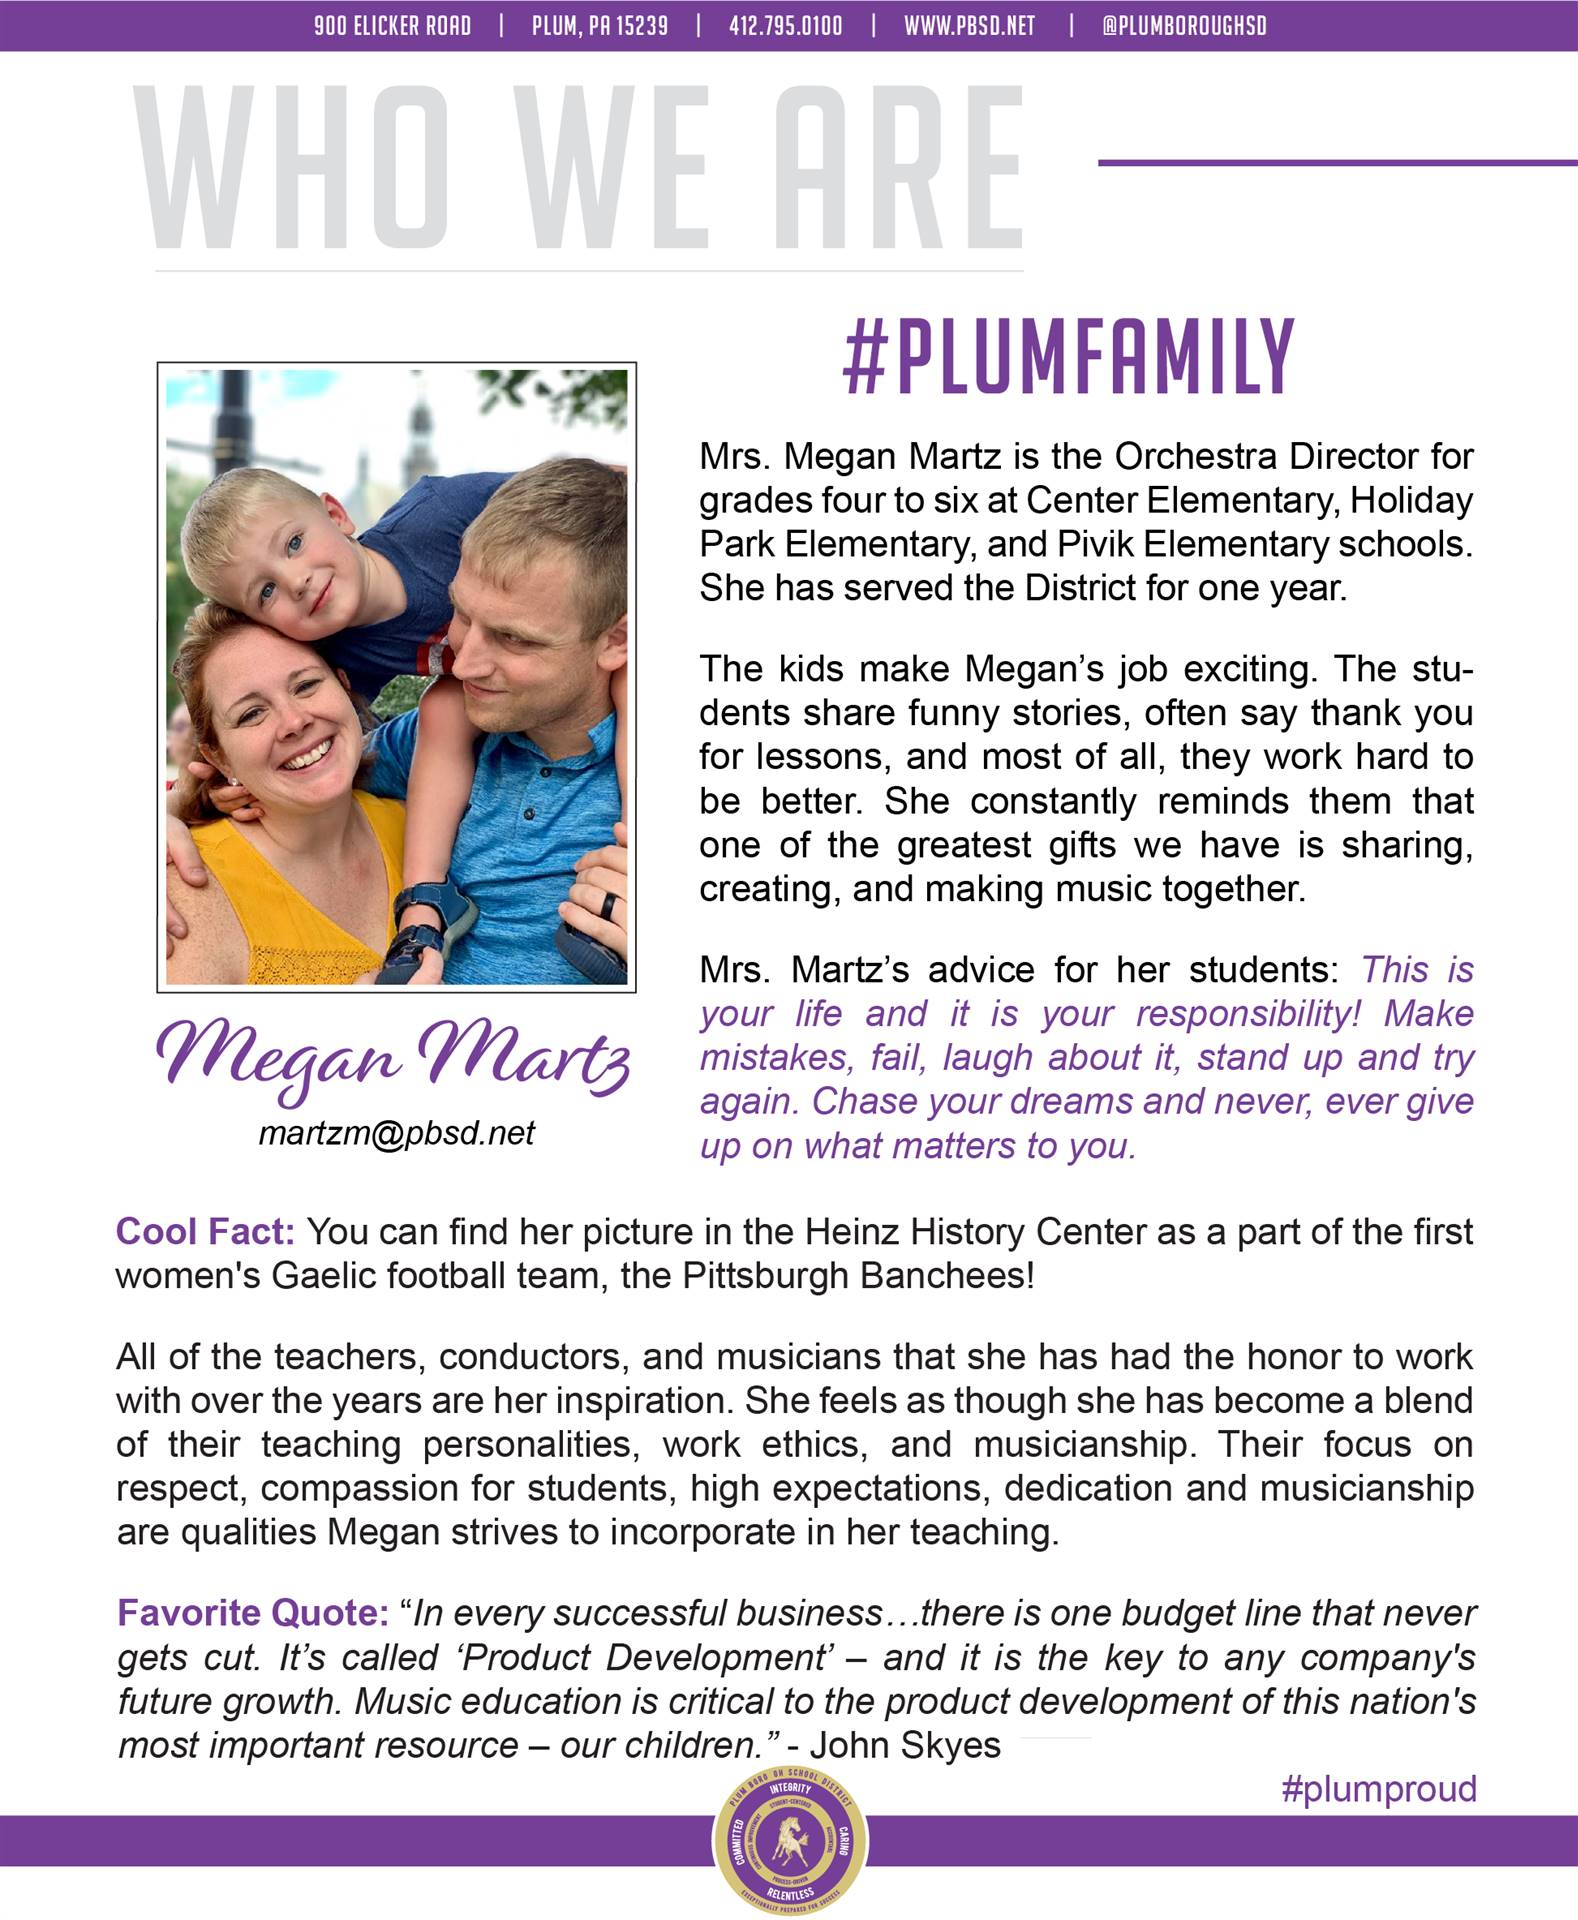 Who We Are Wednesday features Megan Martz.